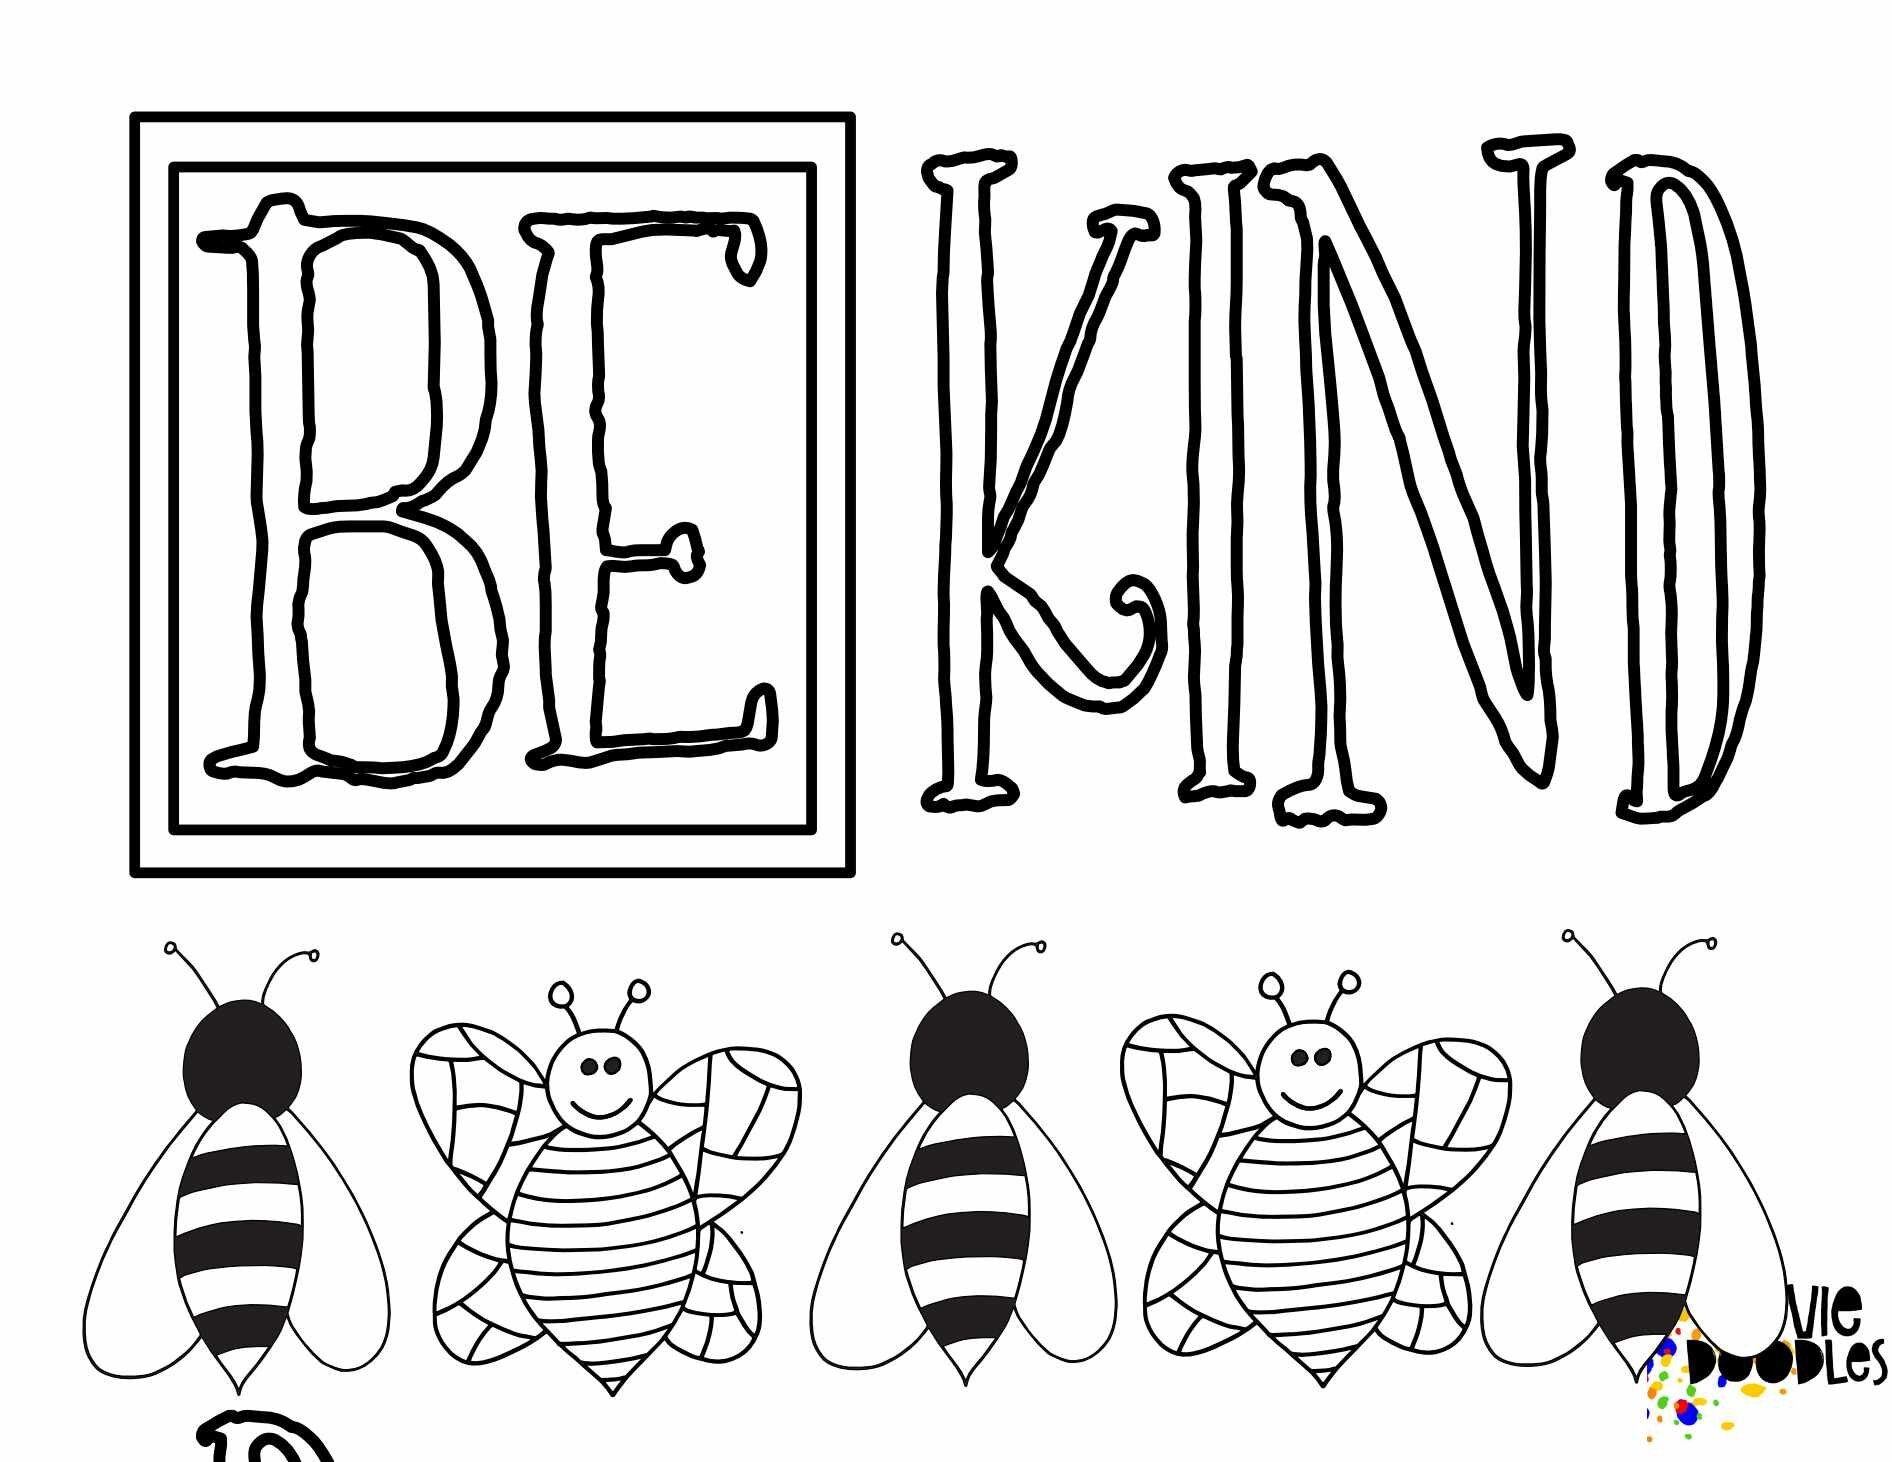 6 Free Be Kind Printable Coloring Pages Stevie Doodles Coloring Pages Bee Coloring Pages Free Printable Coloring Pages [ 1462 x 1892 Pixel ]